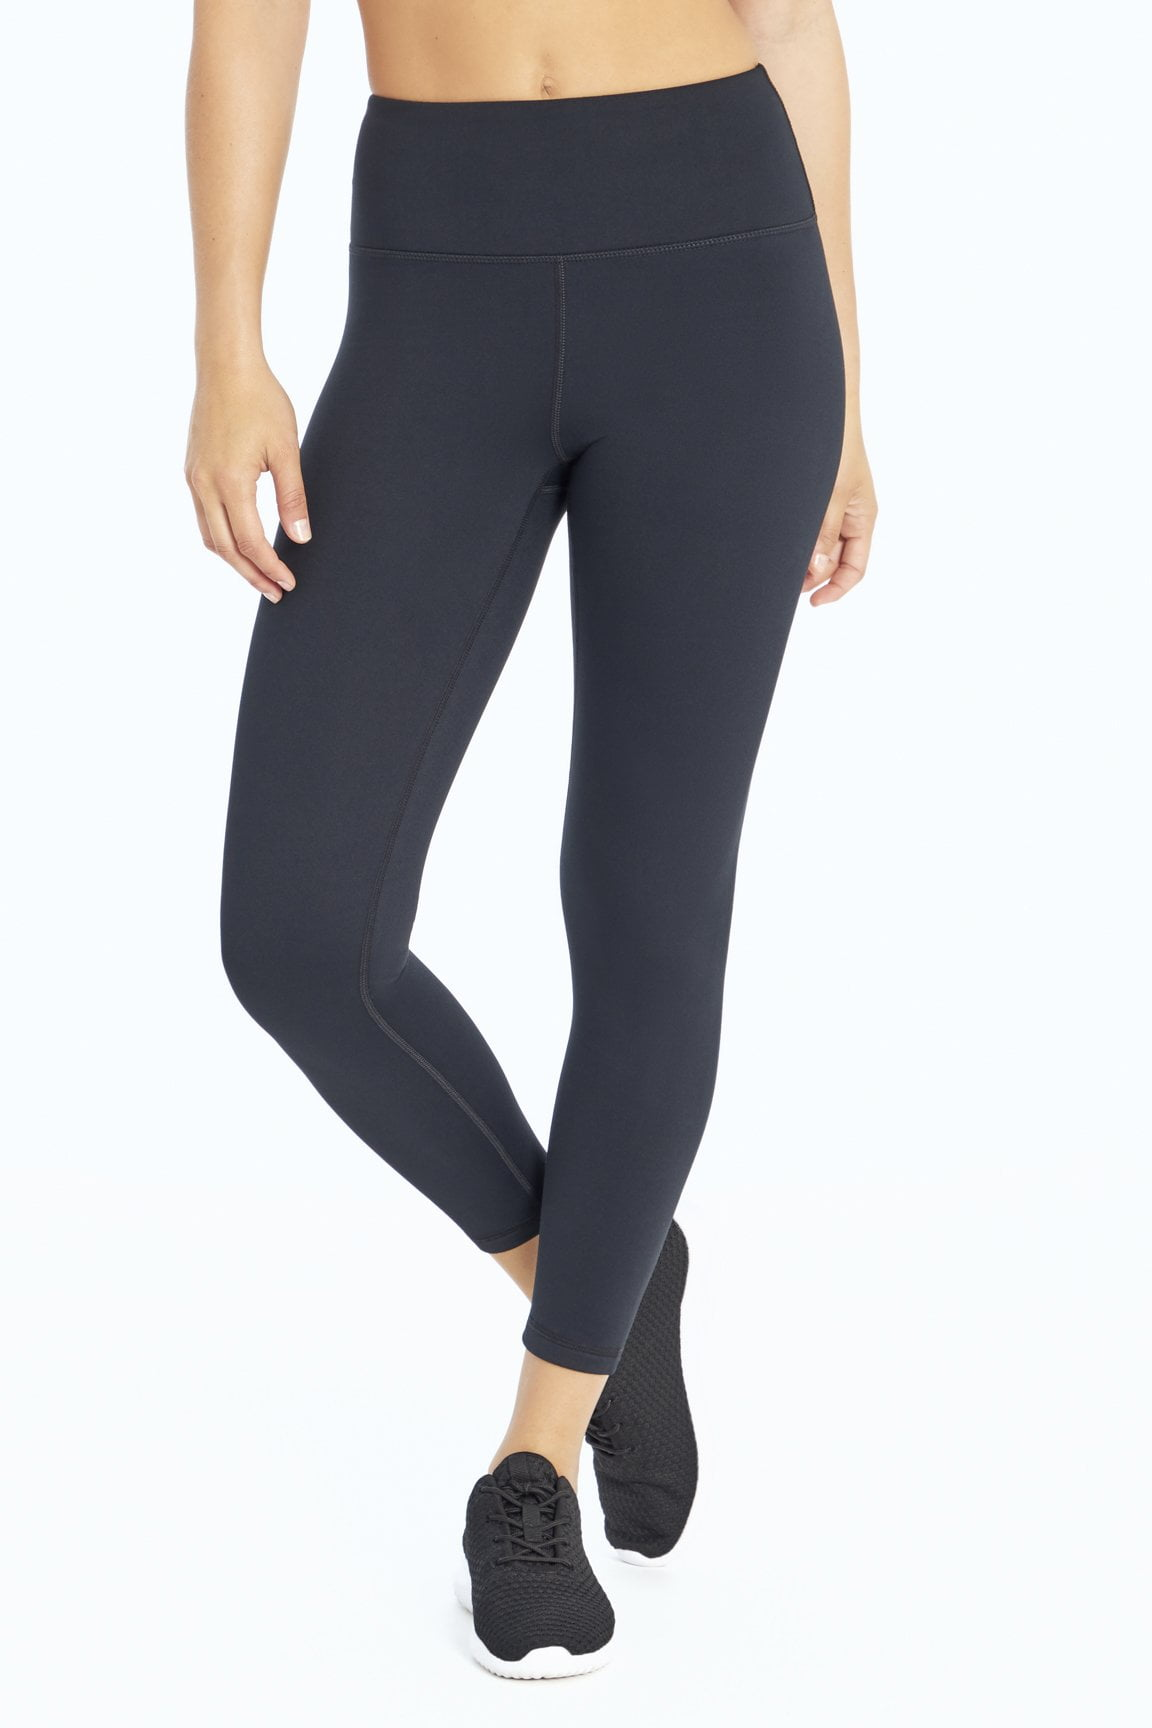 High Waist Cozy Tek-Fleece Legging (Black)